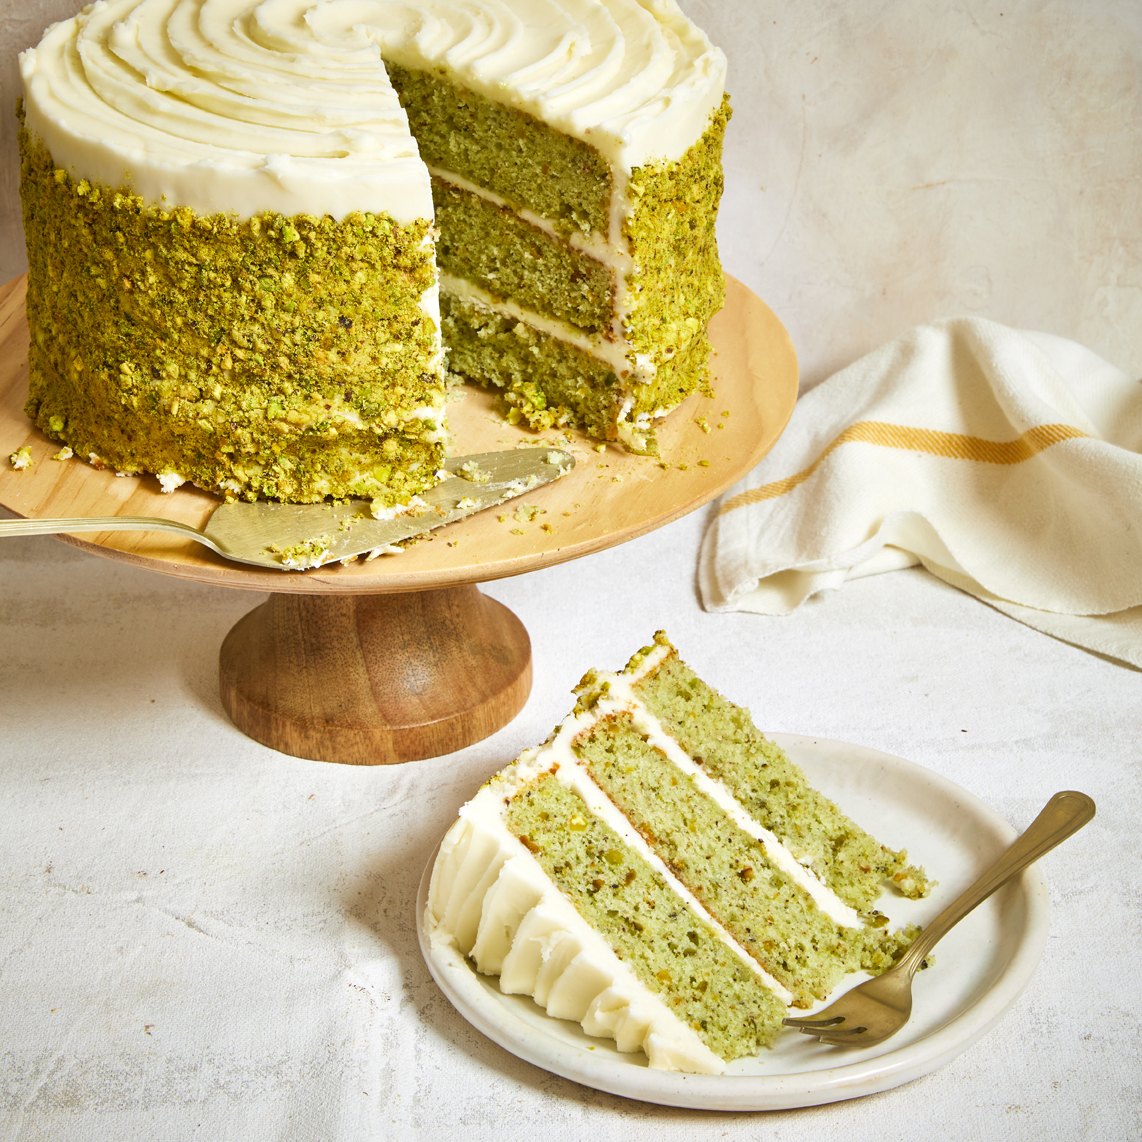 Beautiful layered pistachio cake on a wooden cake stand with a slice out and plated.